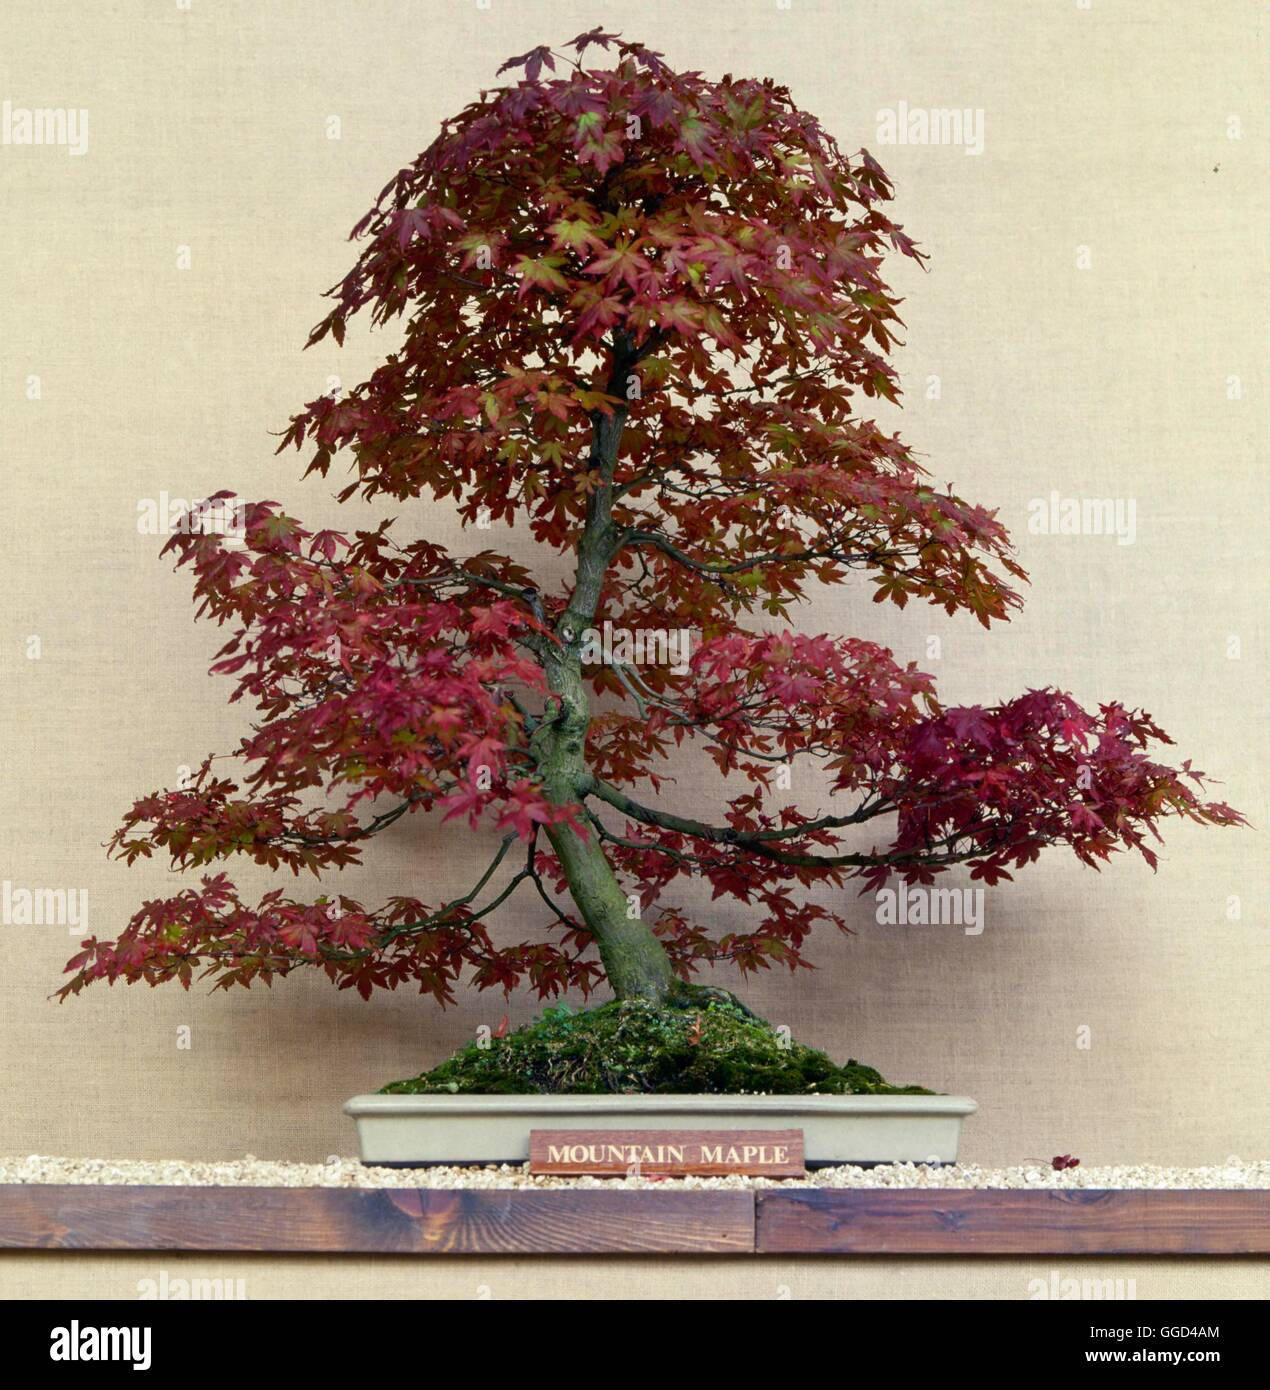 Bonsai Acer Spicatum Mountain Maple Bon061339 Stock Photo